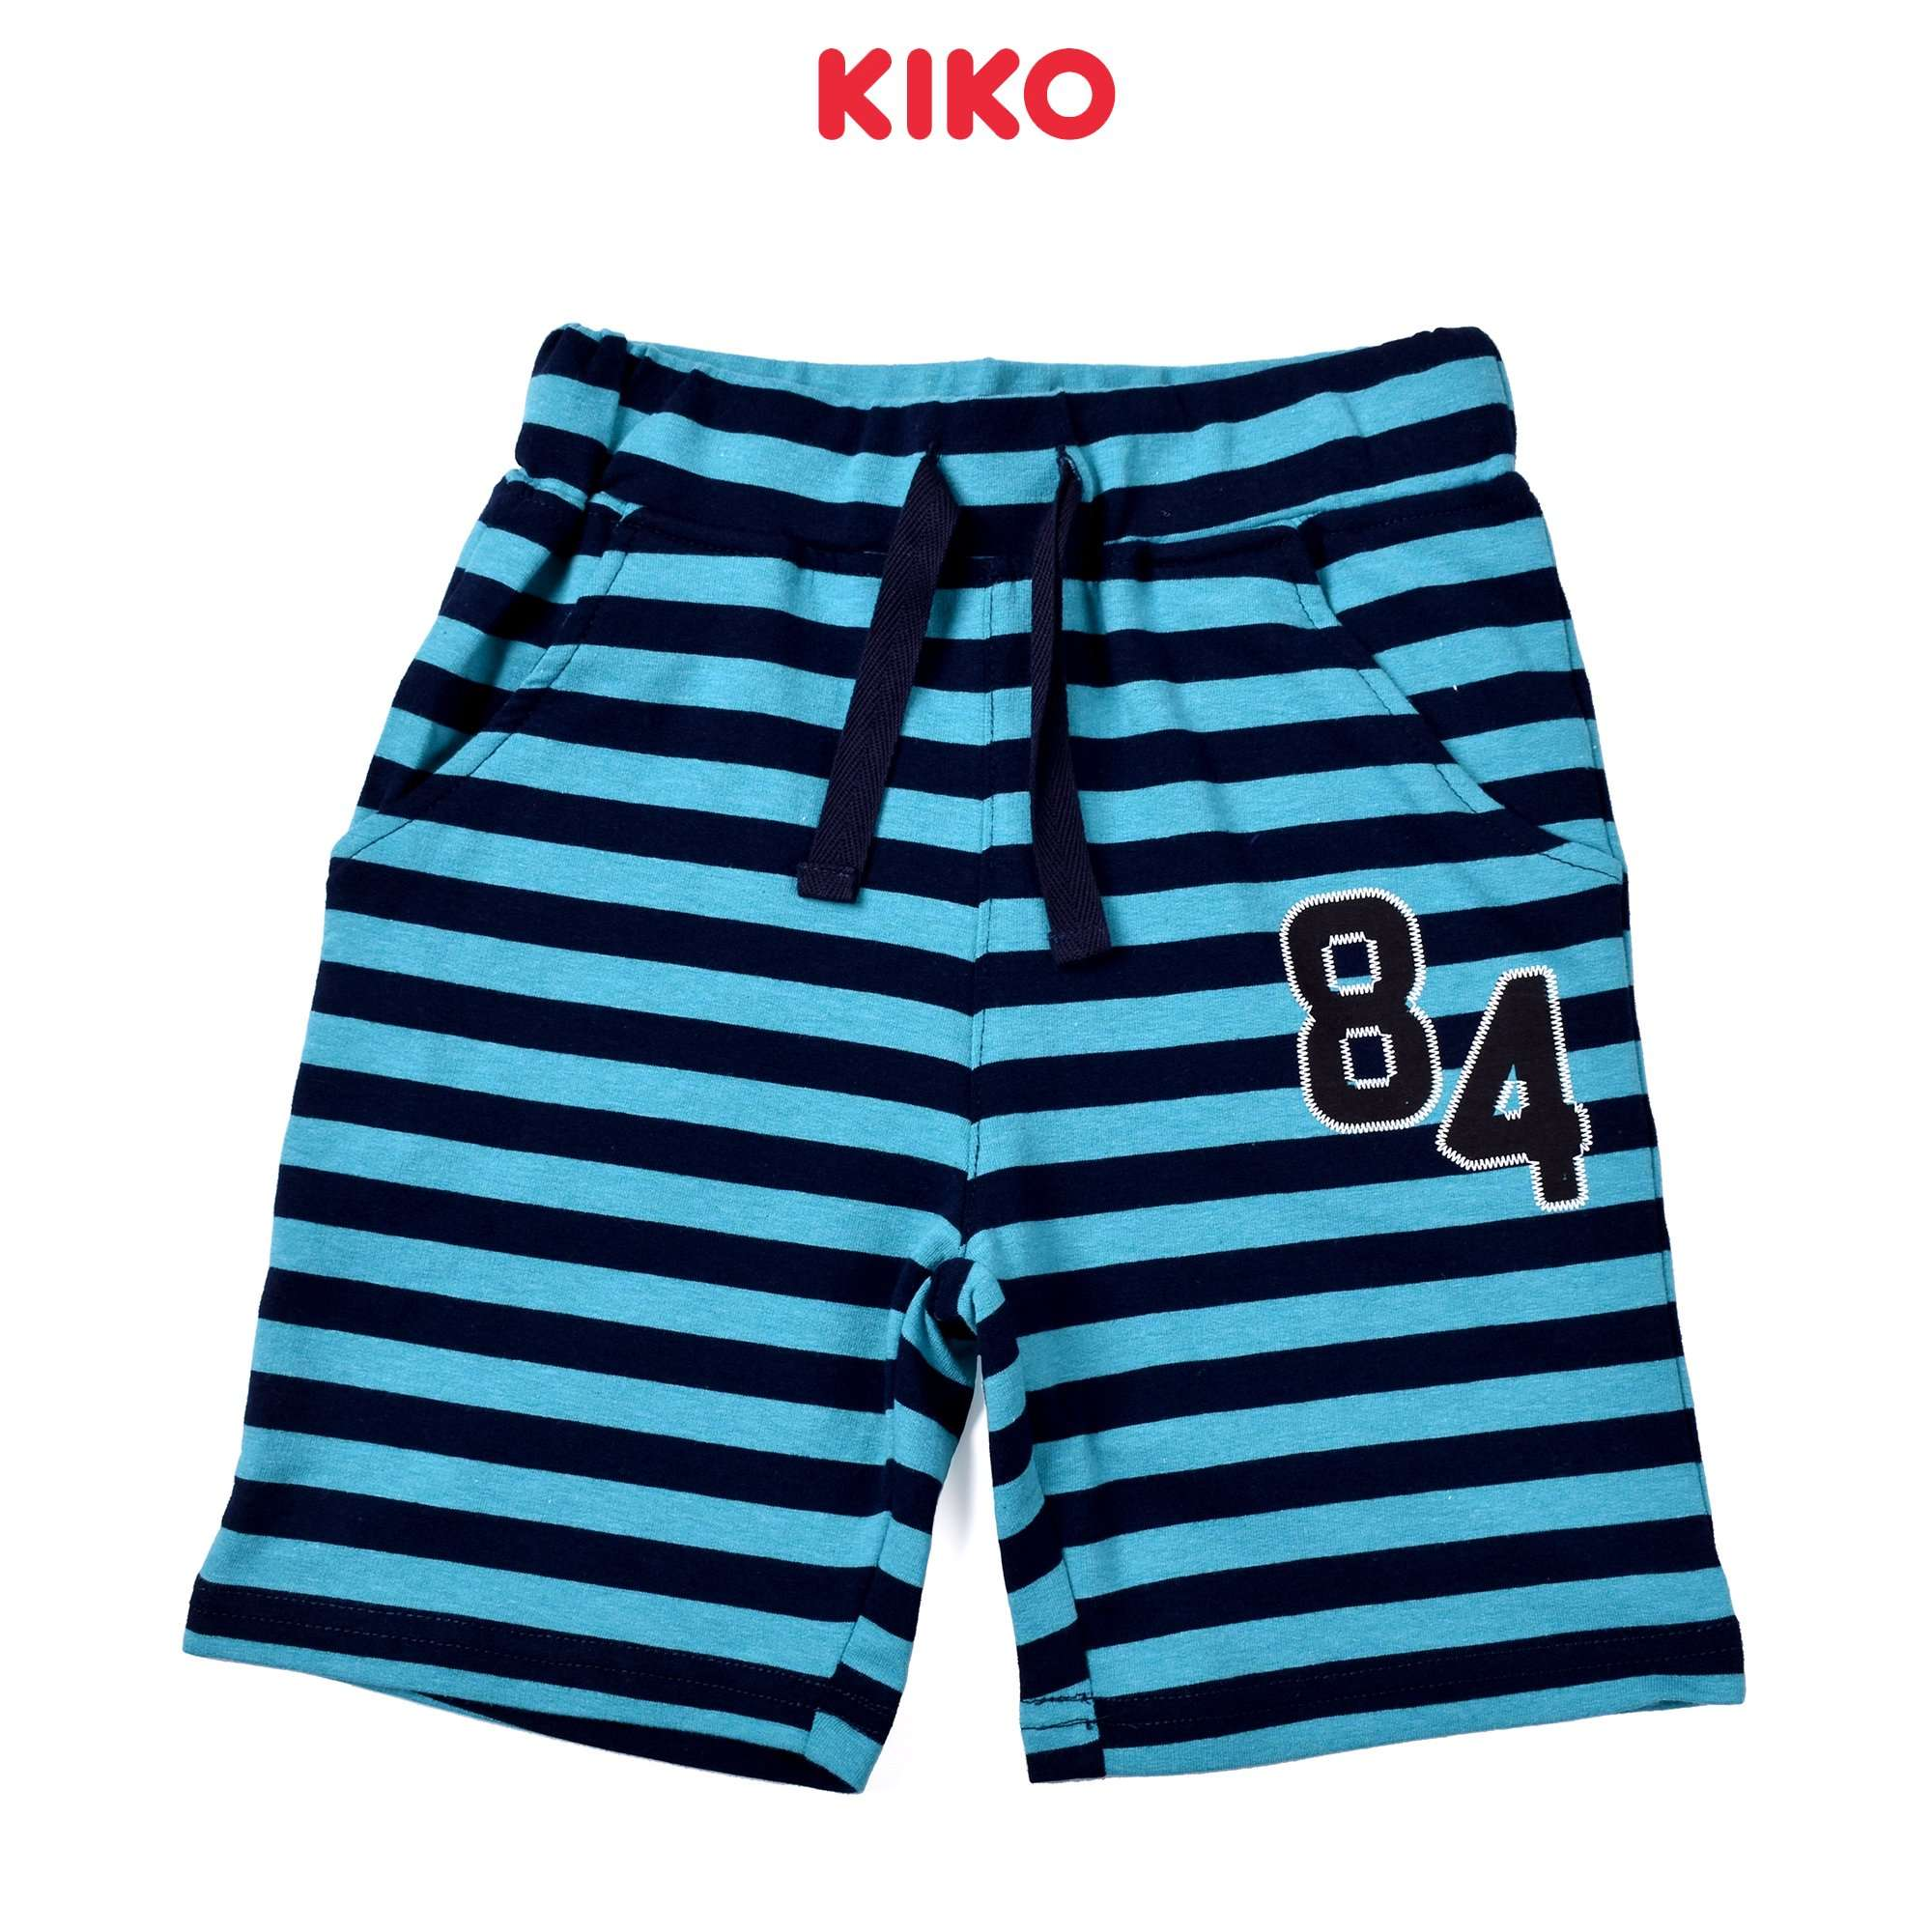 KIKO Boy Knit Short Pants - Blue 121263-286 : Buy KIKO online at CMG.MY